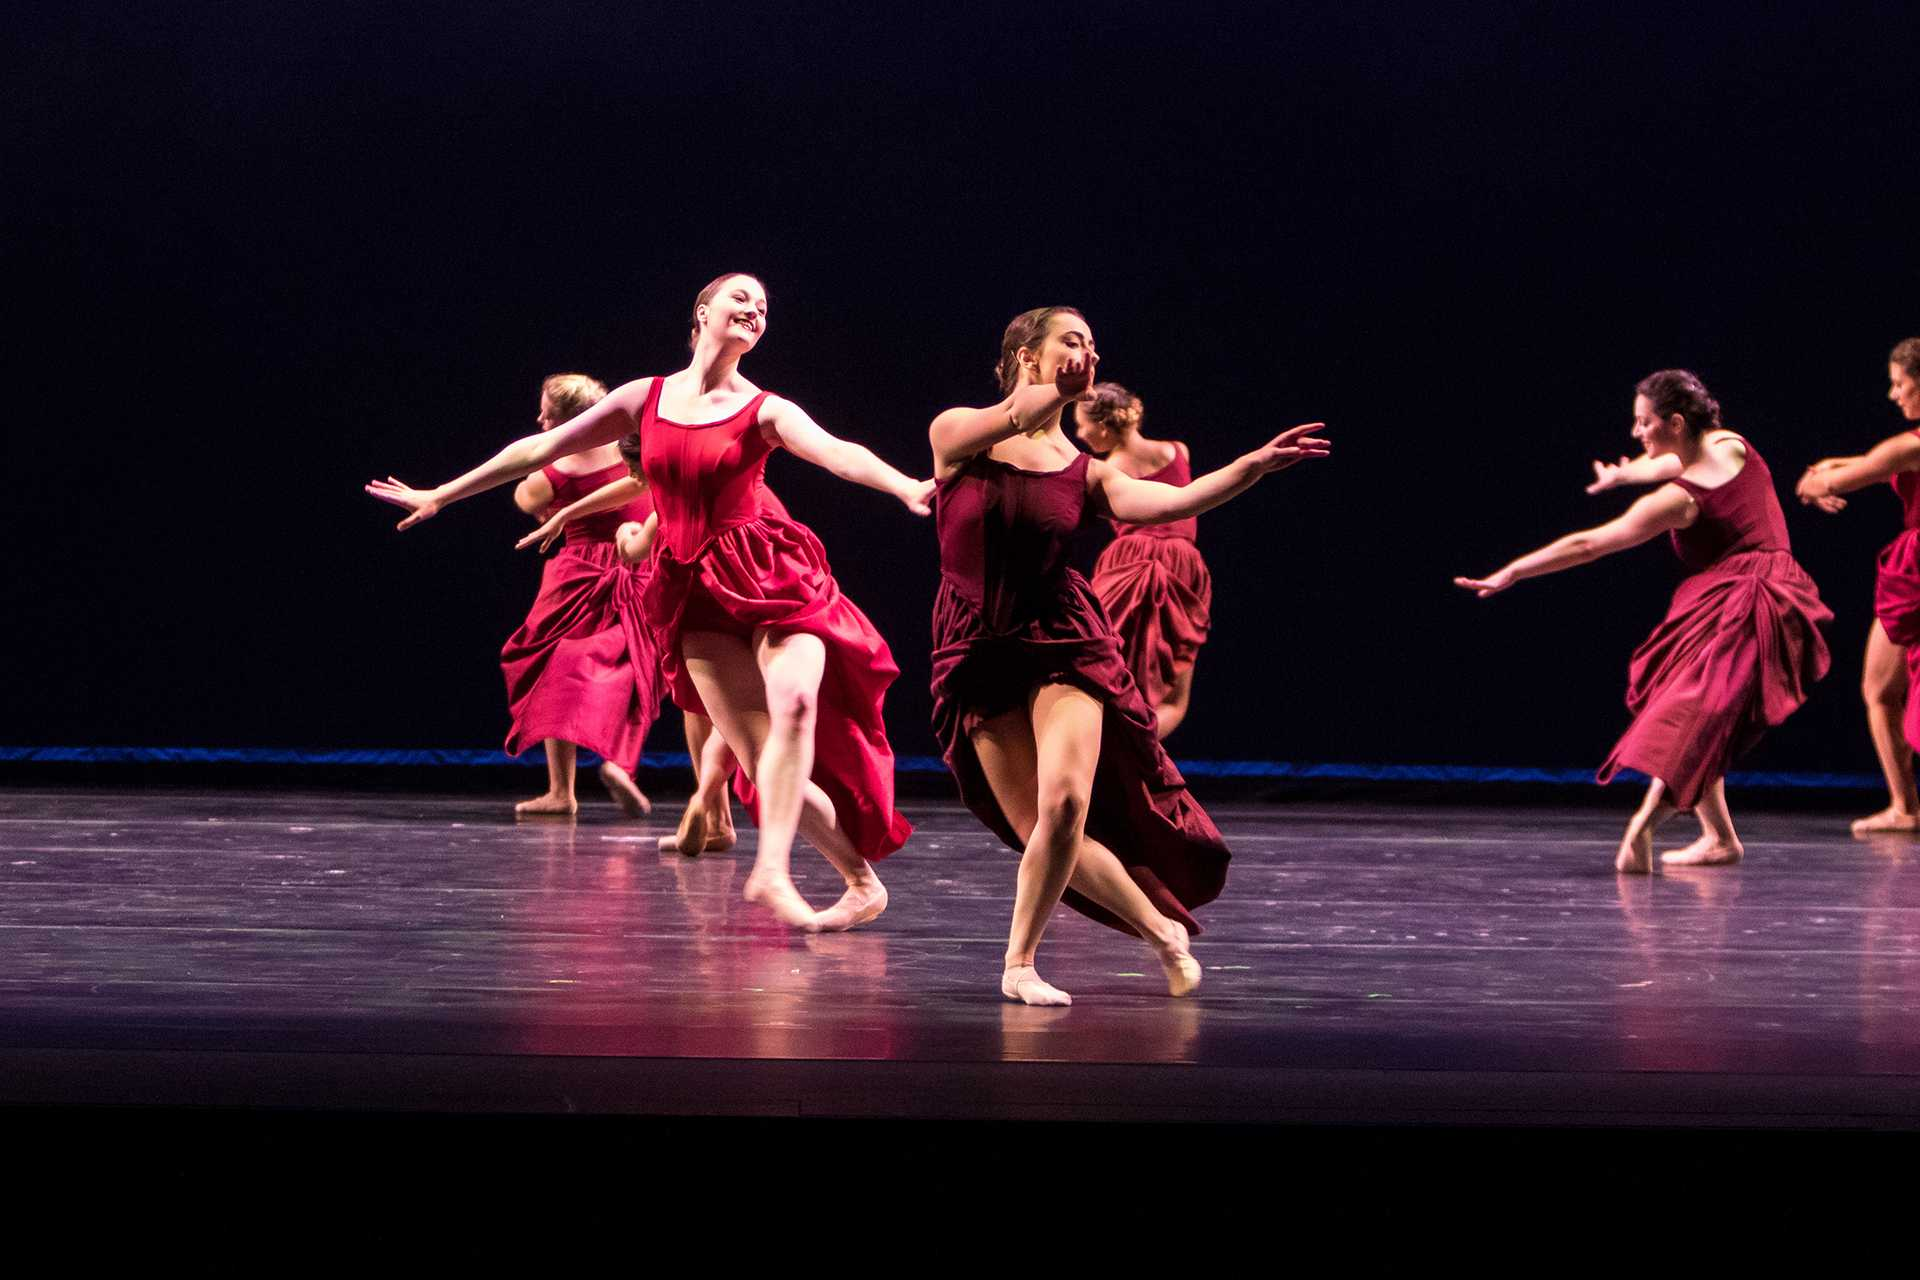 Students from the University of Iowa Dance Department perform the dance 'Ask the Beasts' as part of Dance Gala 2017 at Hancher Auditorium on Wednesday, Nov. 8, 2017. (David Harmantas/The Daily Iowan)